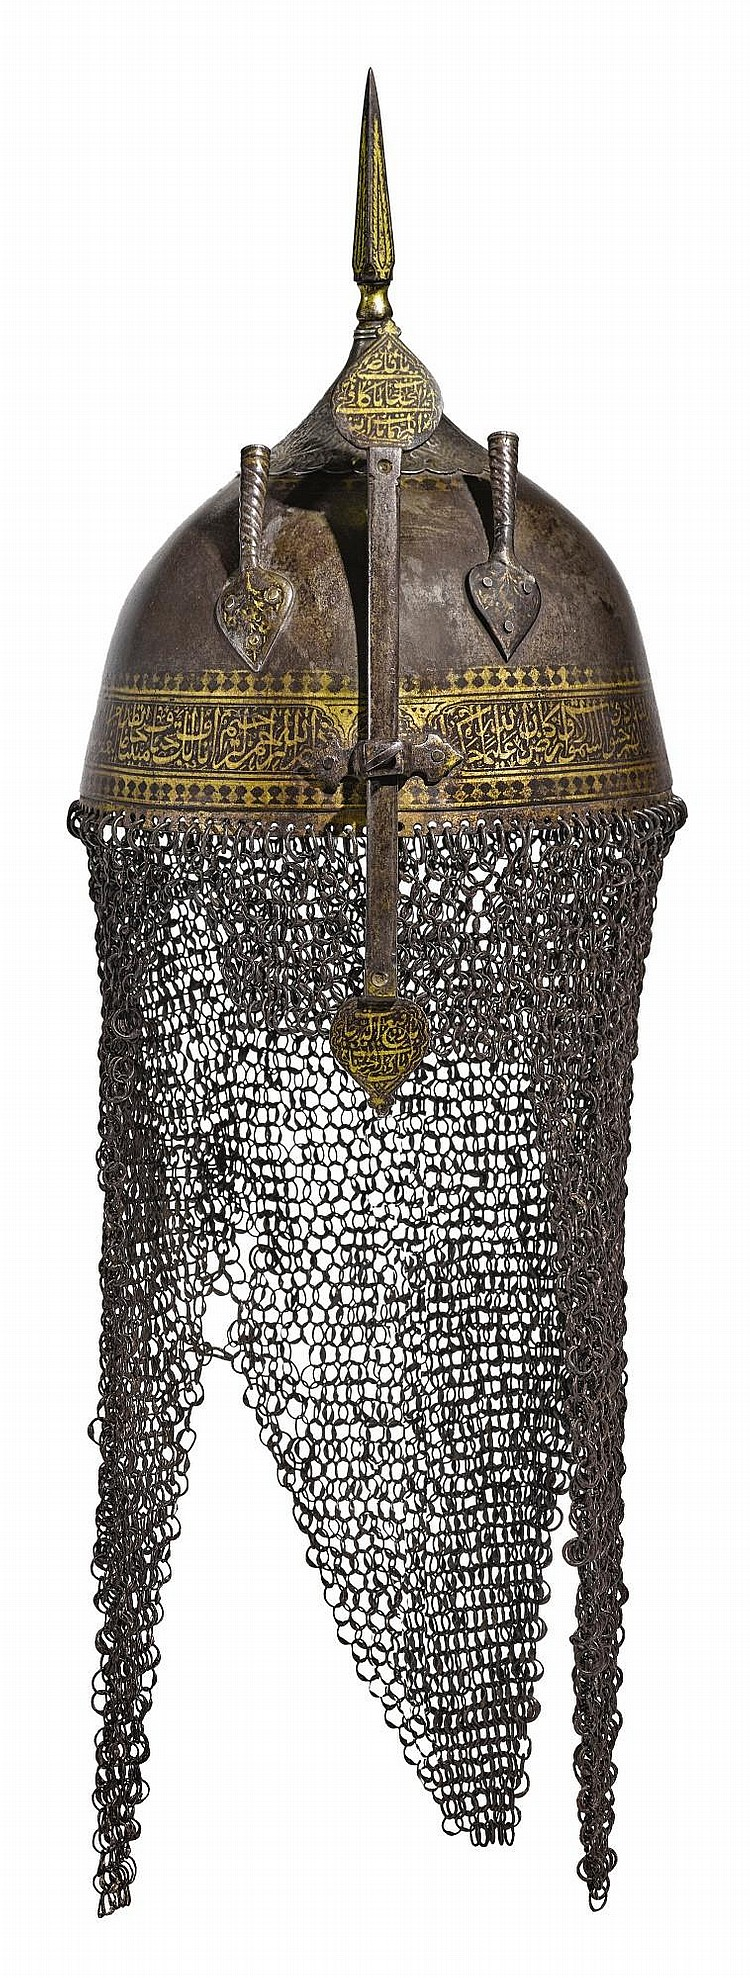 A SAFAVID OR ZAND GOLD-OVERLAID STEEL HELMET, PERSIA, 17TH/18TH CENTURY |